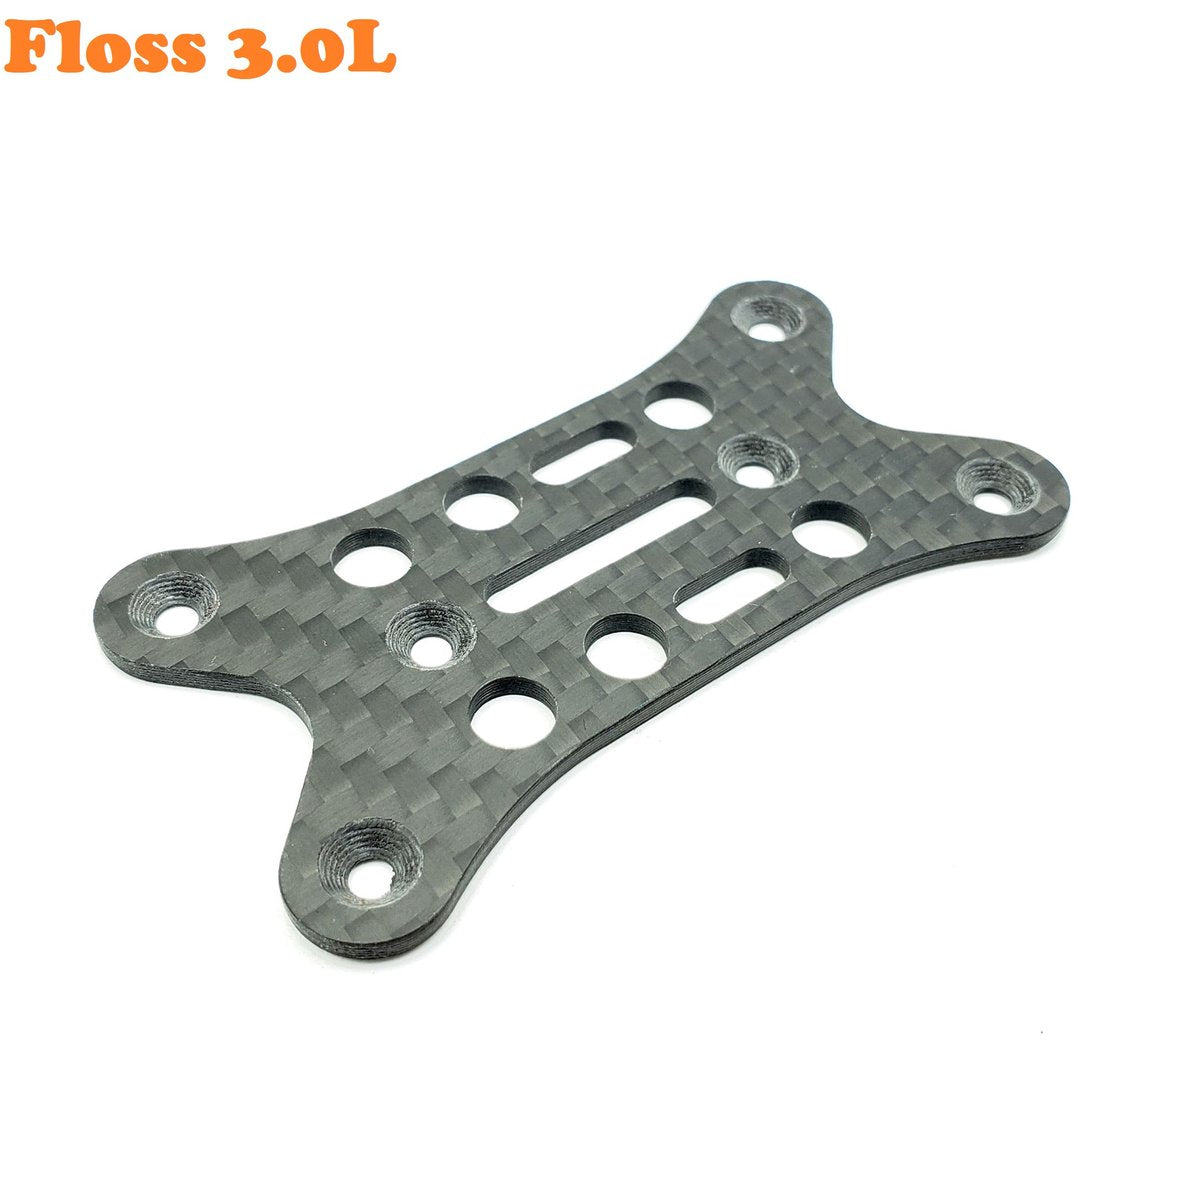 REPLACEMENT 2MM BOTTOM PLATE FLOSS 3.0 LITE